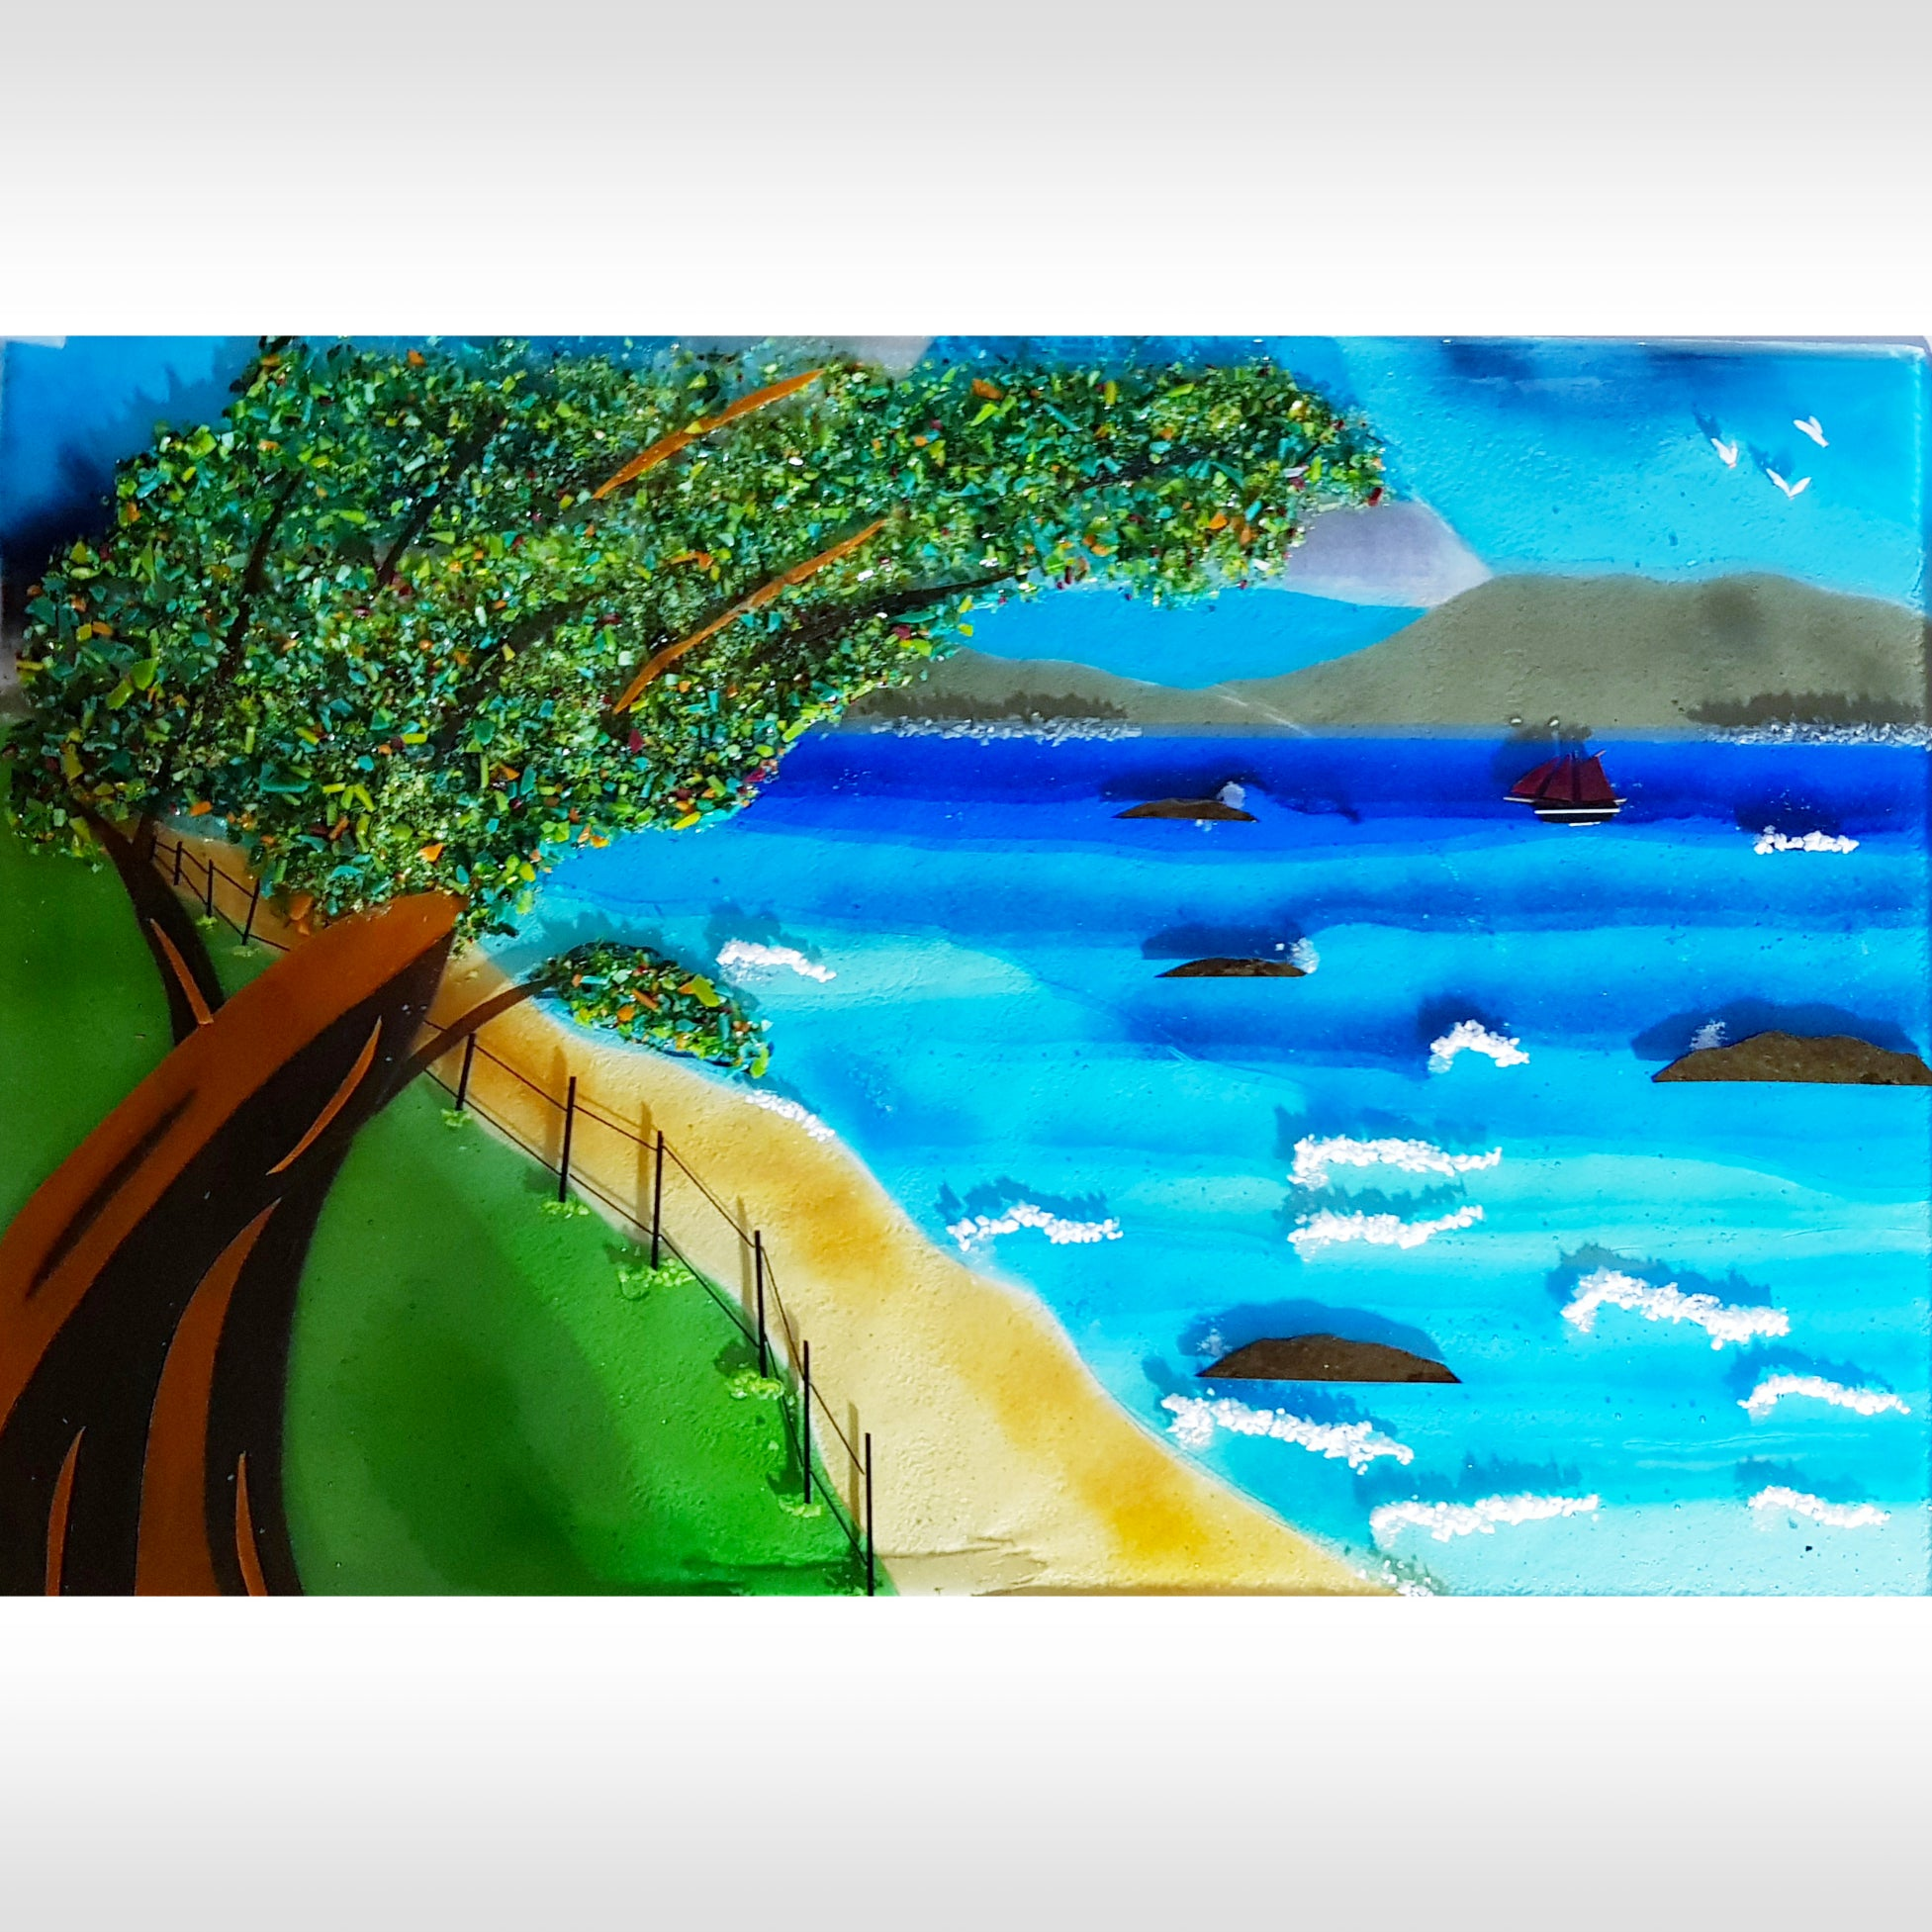 A fused glass wall panel from Connemara Blue featuring a windswept tree, beach, sea and mountains